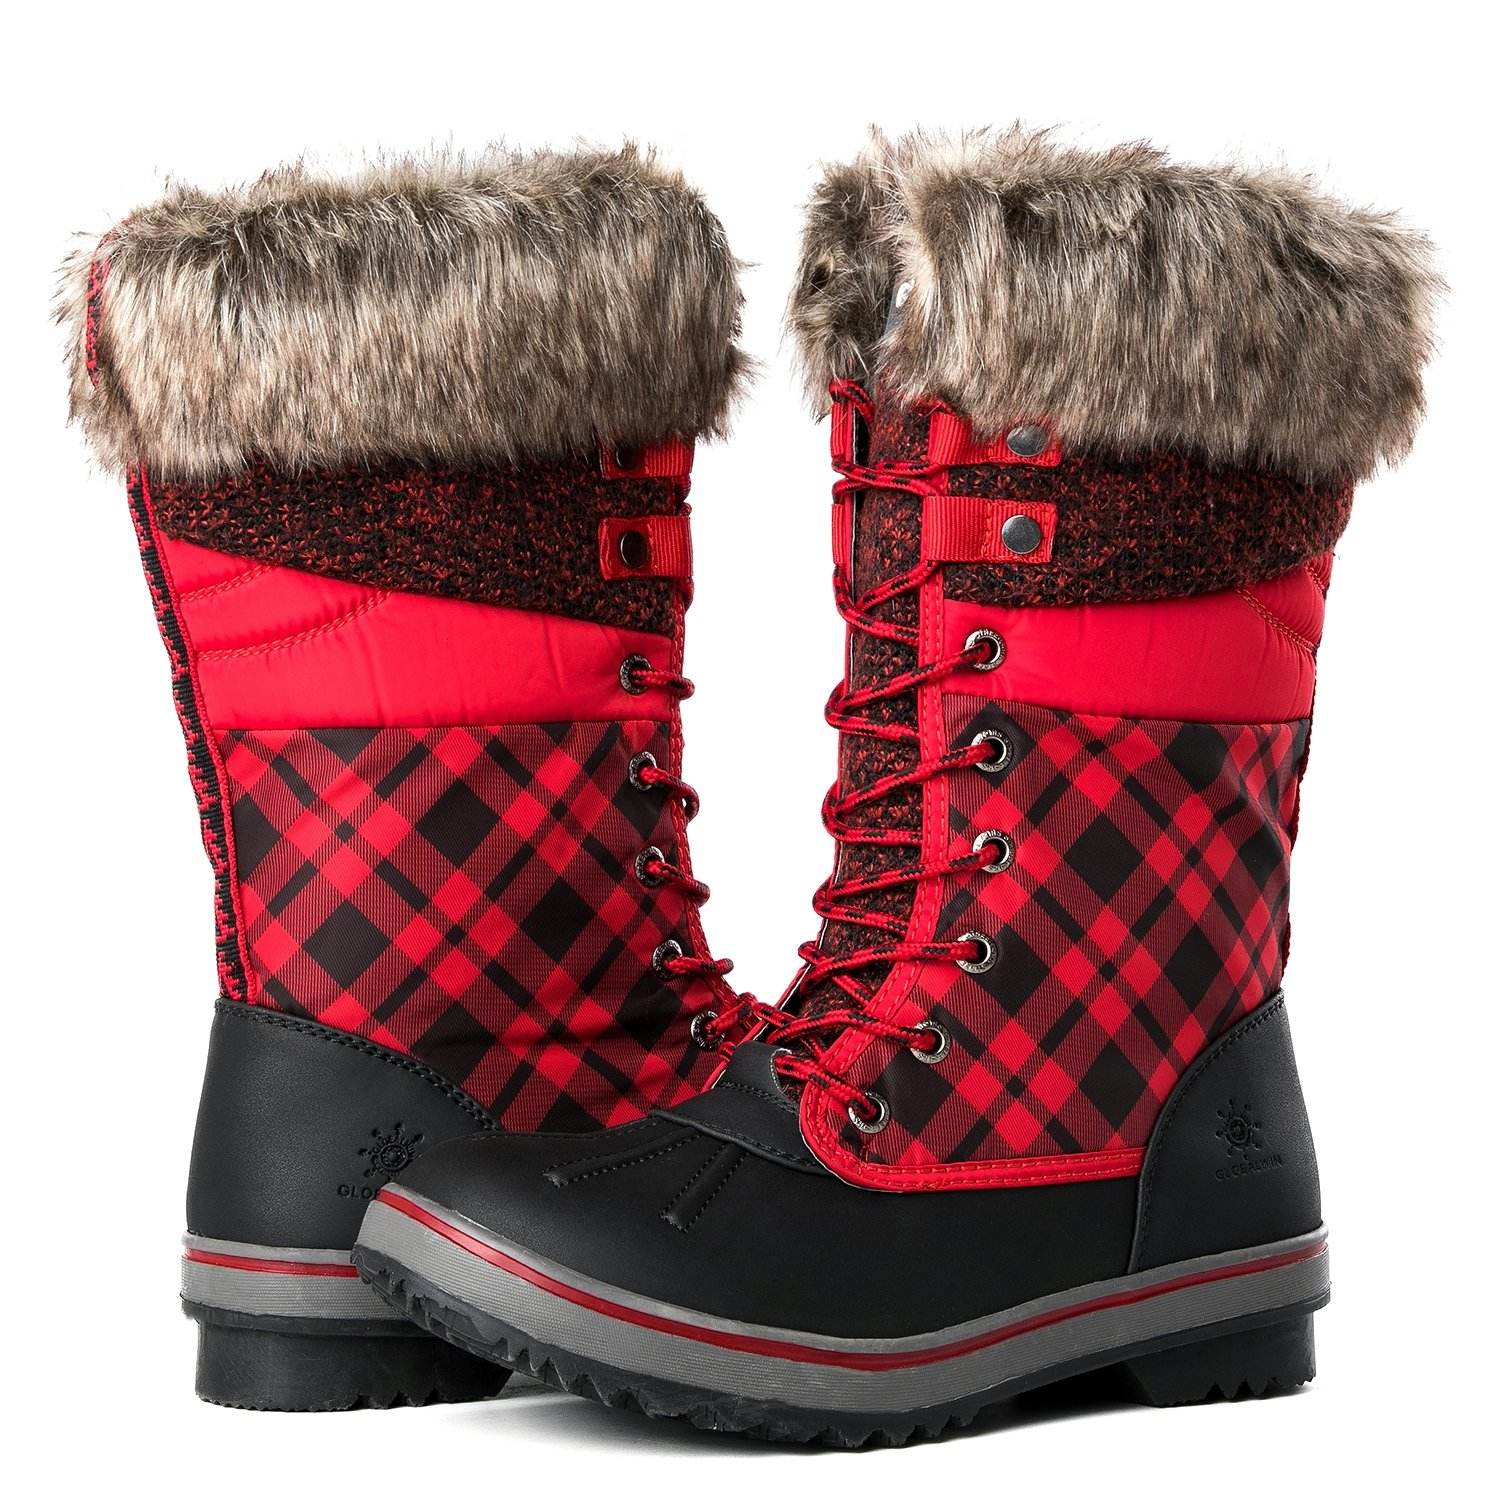 Global Win B075DGJ7WF GLOBALWIN Women's 1730 Winter Snow Boots B075DGJ7WF Win 9.5 B(M) US|1733black/Red a28cd1